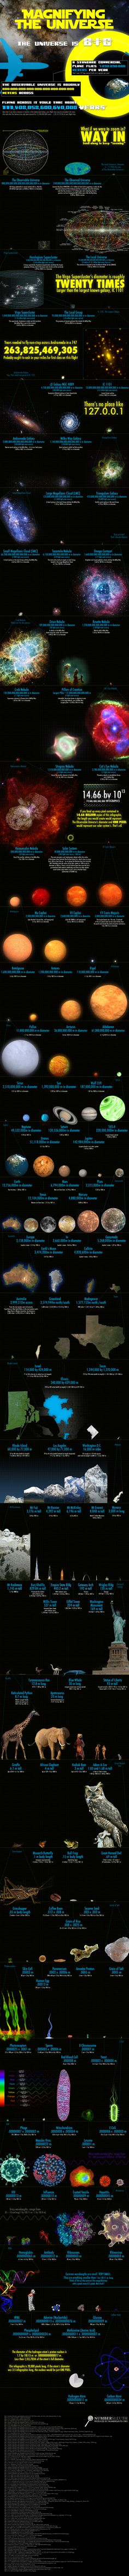 Ever wonder how big the universe is?